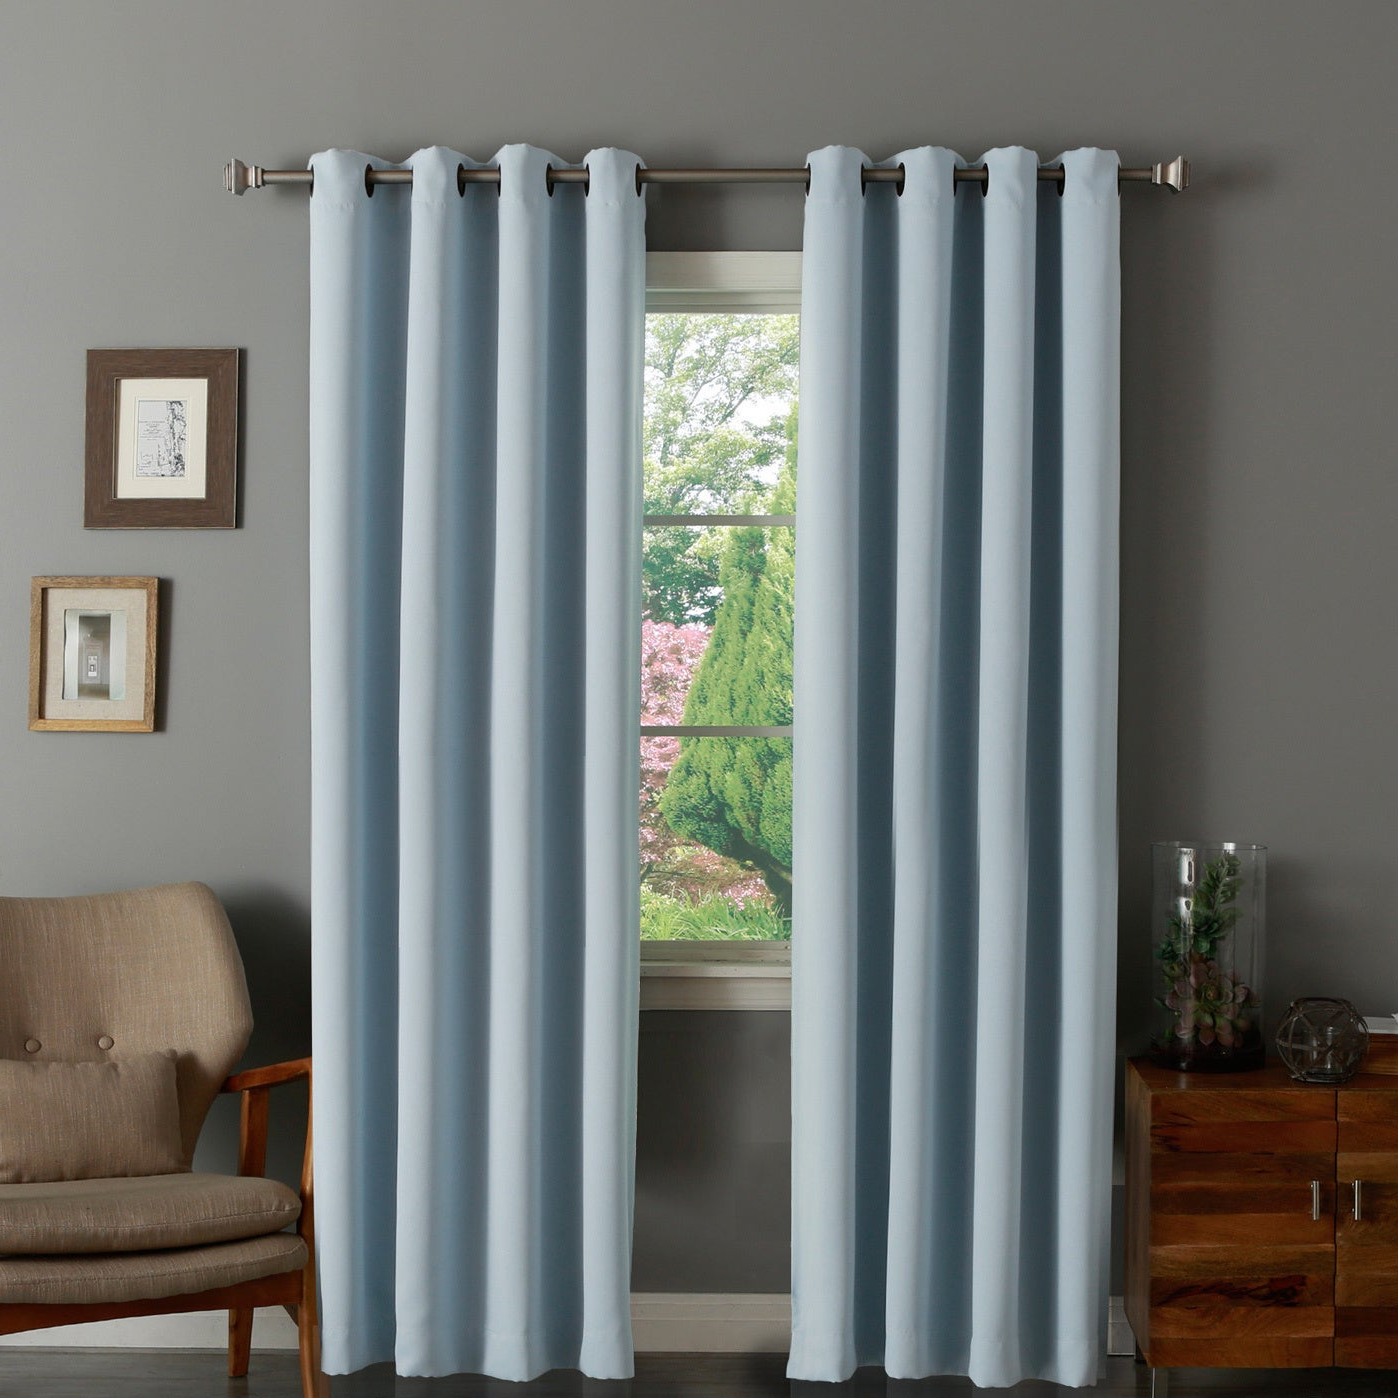 Well Known Thermal Insulated Blackout Grommet Top Curtain Panel Pairs Regarding Aurora Home Thermal Insulated Blackout Grommet Top 84 Inch Curtain Panel Pair – 52 X (View 18 of 20)